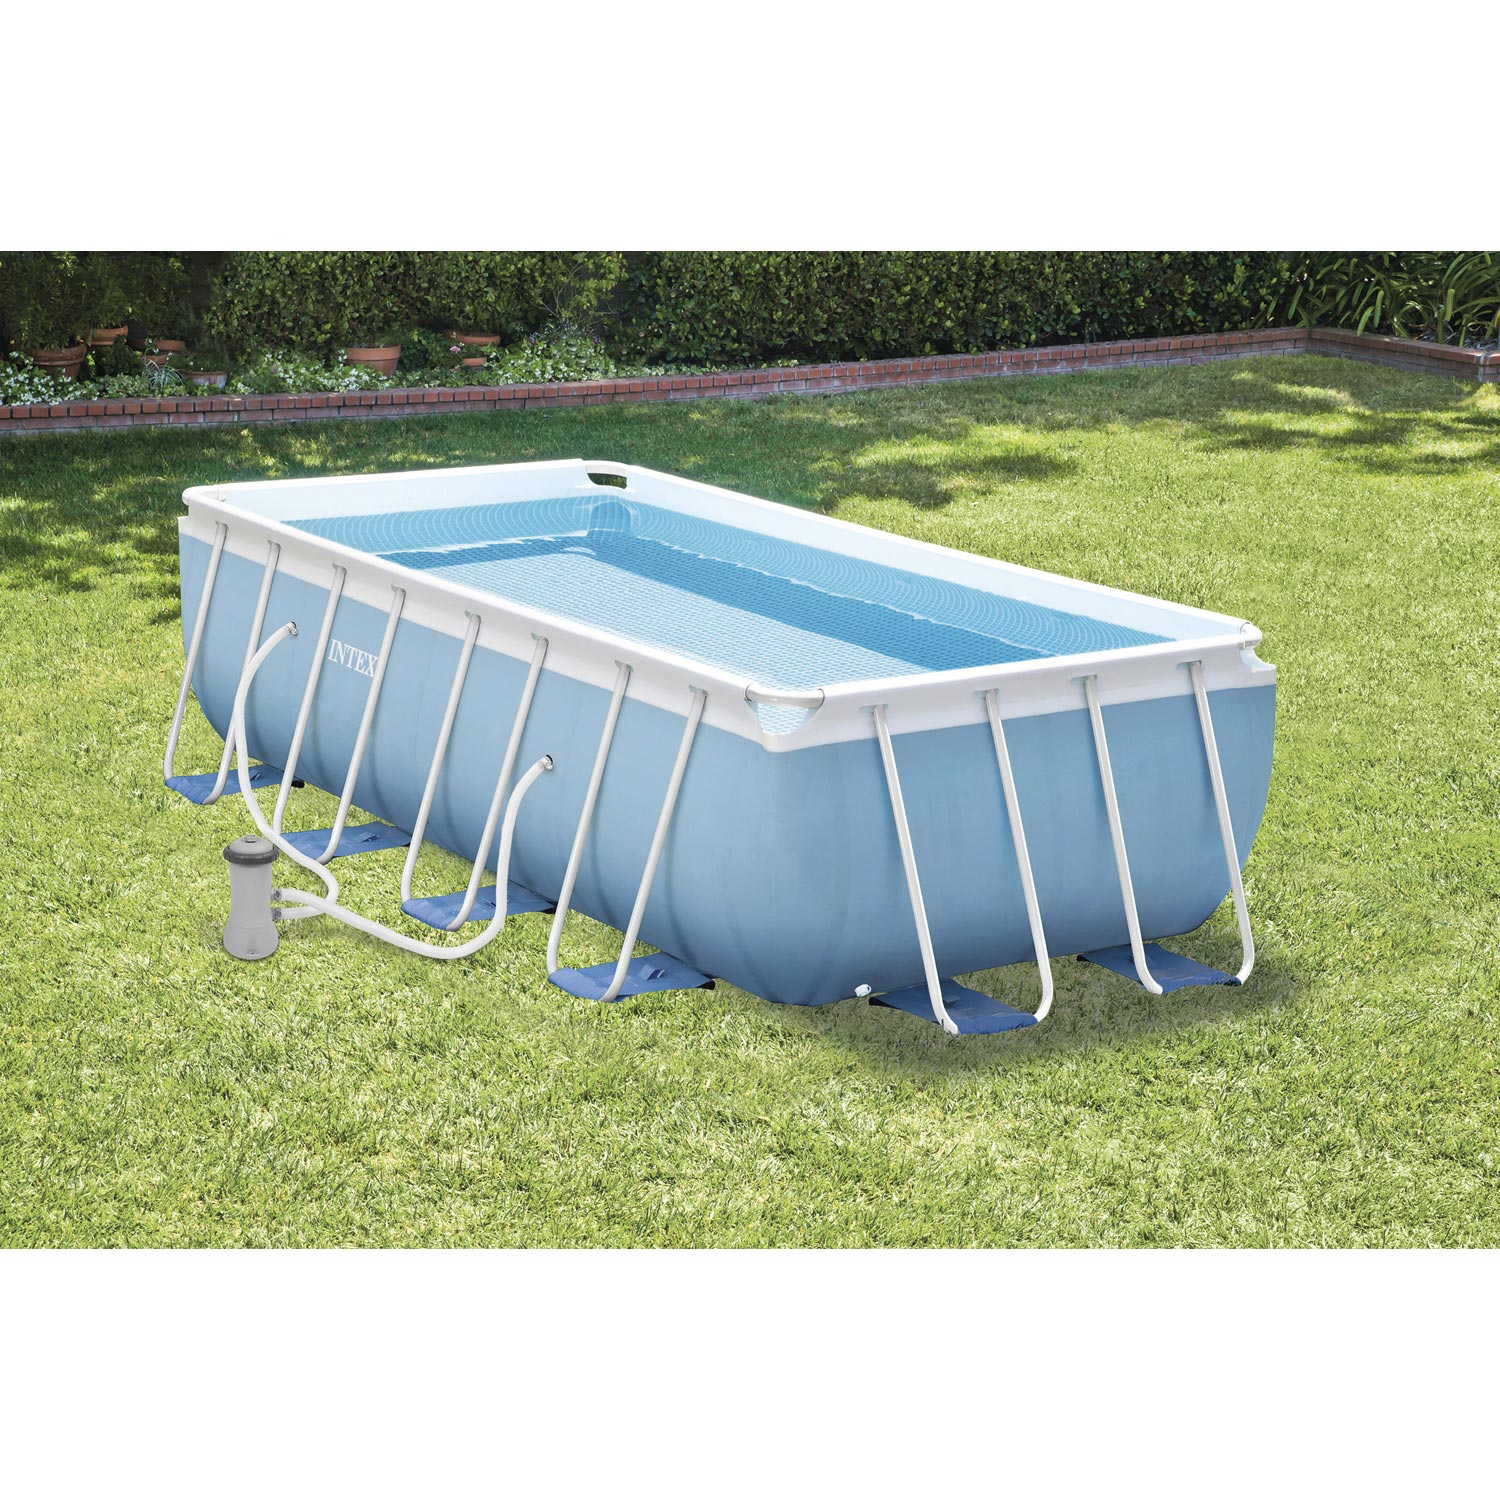 Piscine hors sol autoportante tubulaire prism frame intex for Piscine autoportante